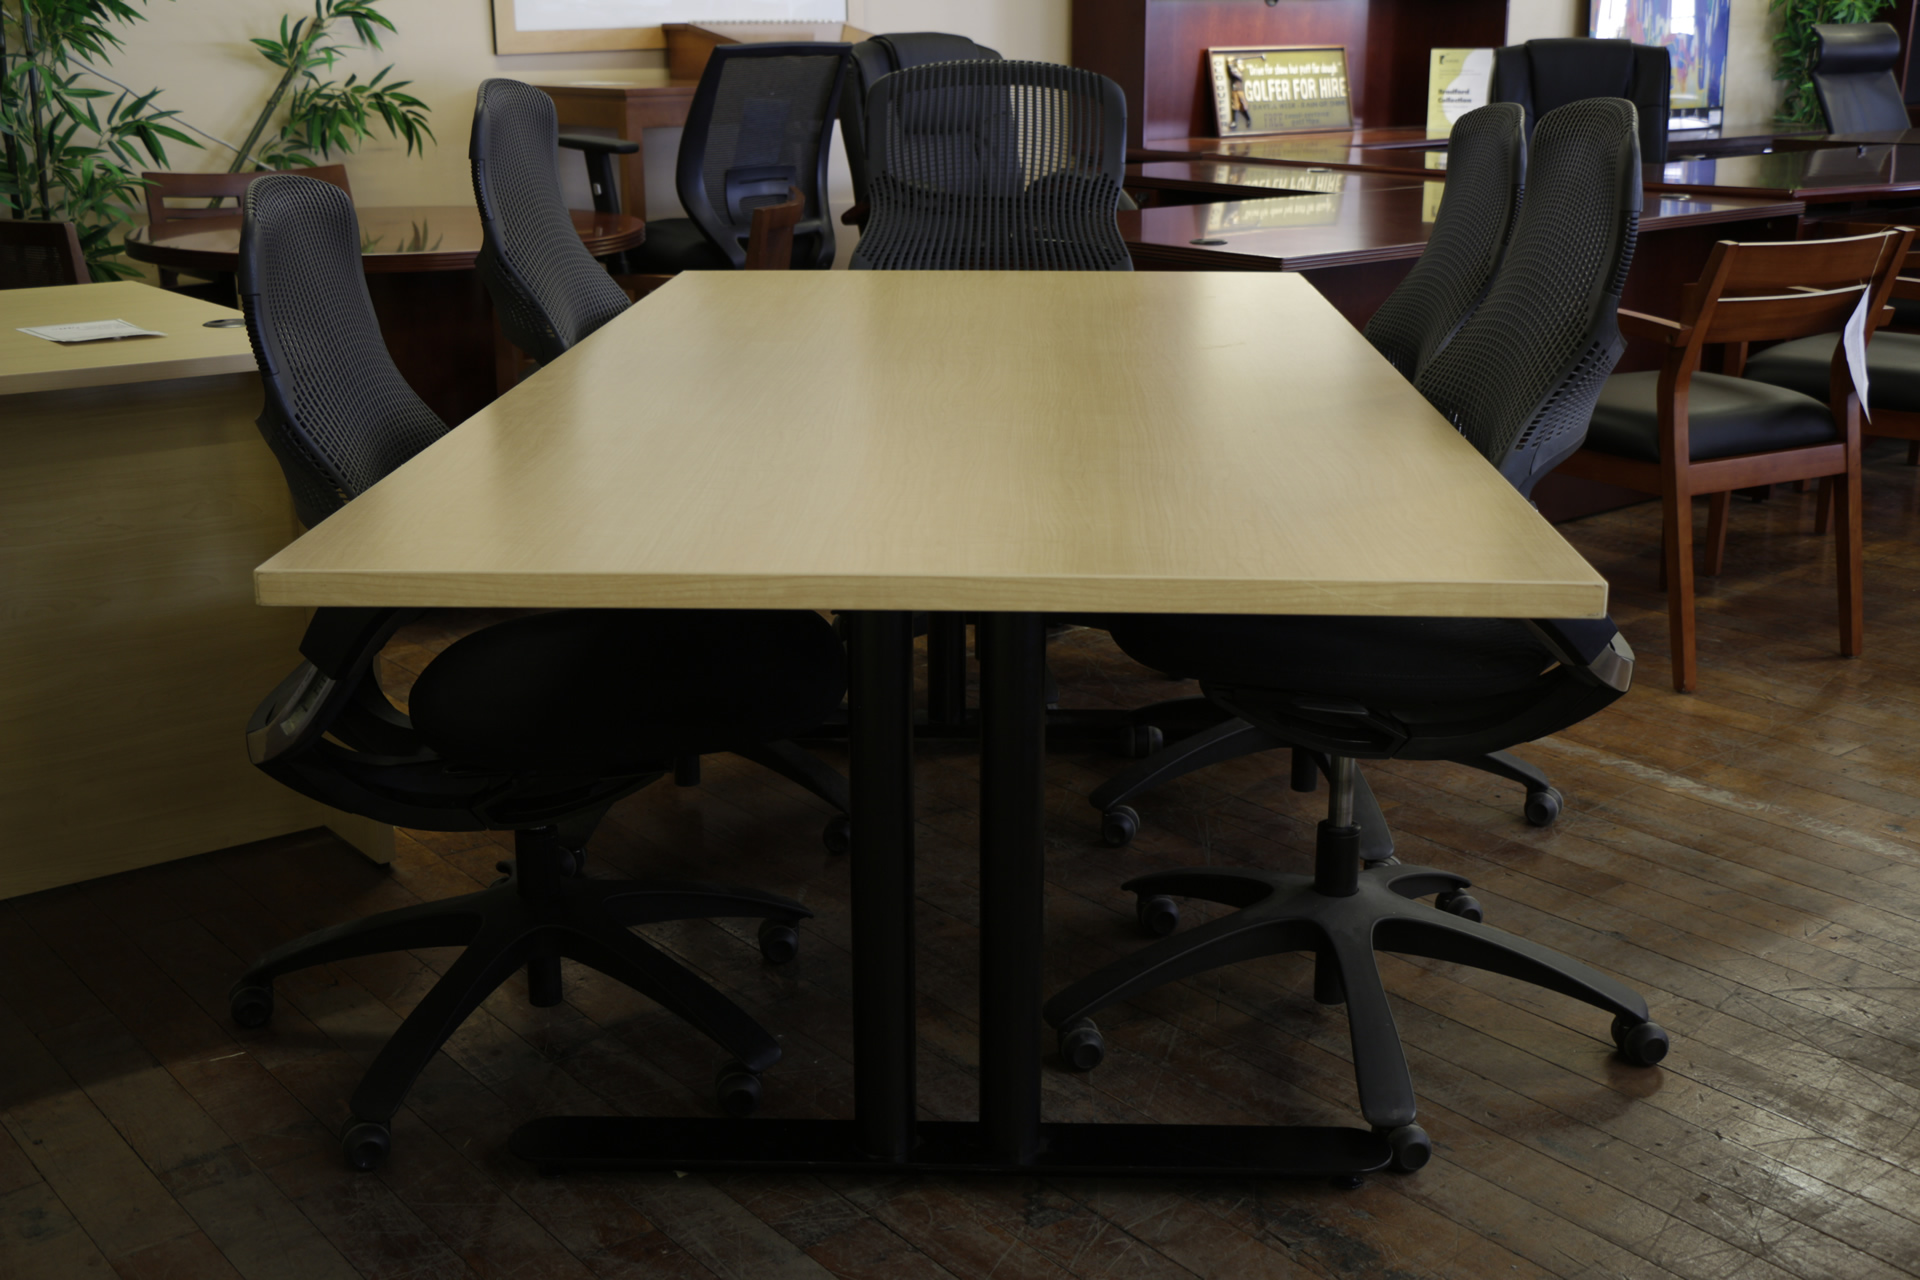 peartreeofficefurniture_peartreeofficefurniture_mg_3559.jpg